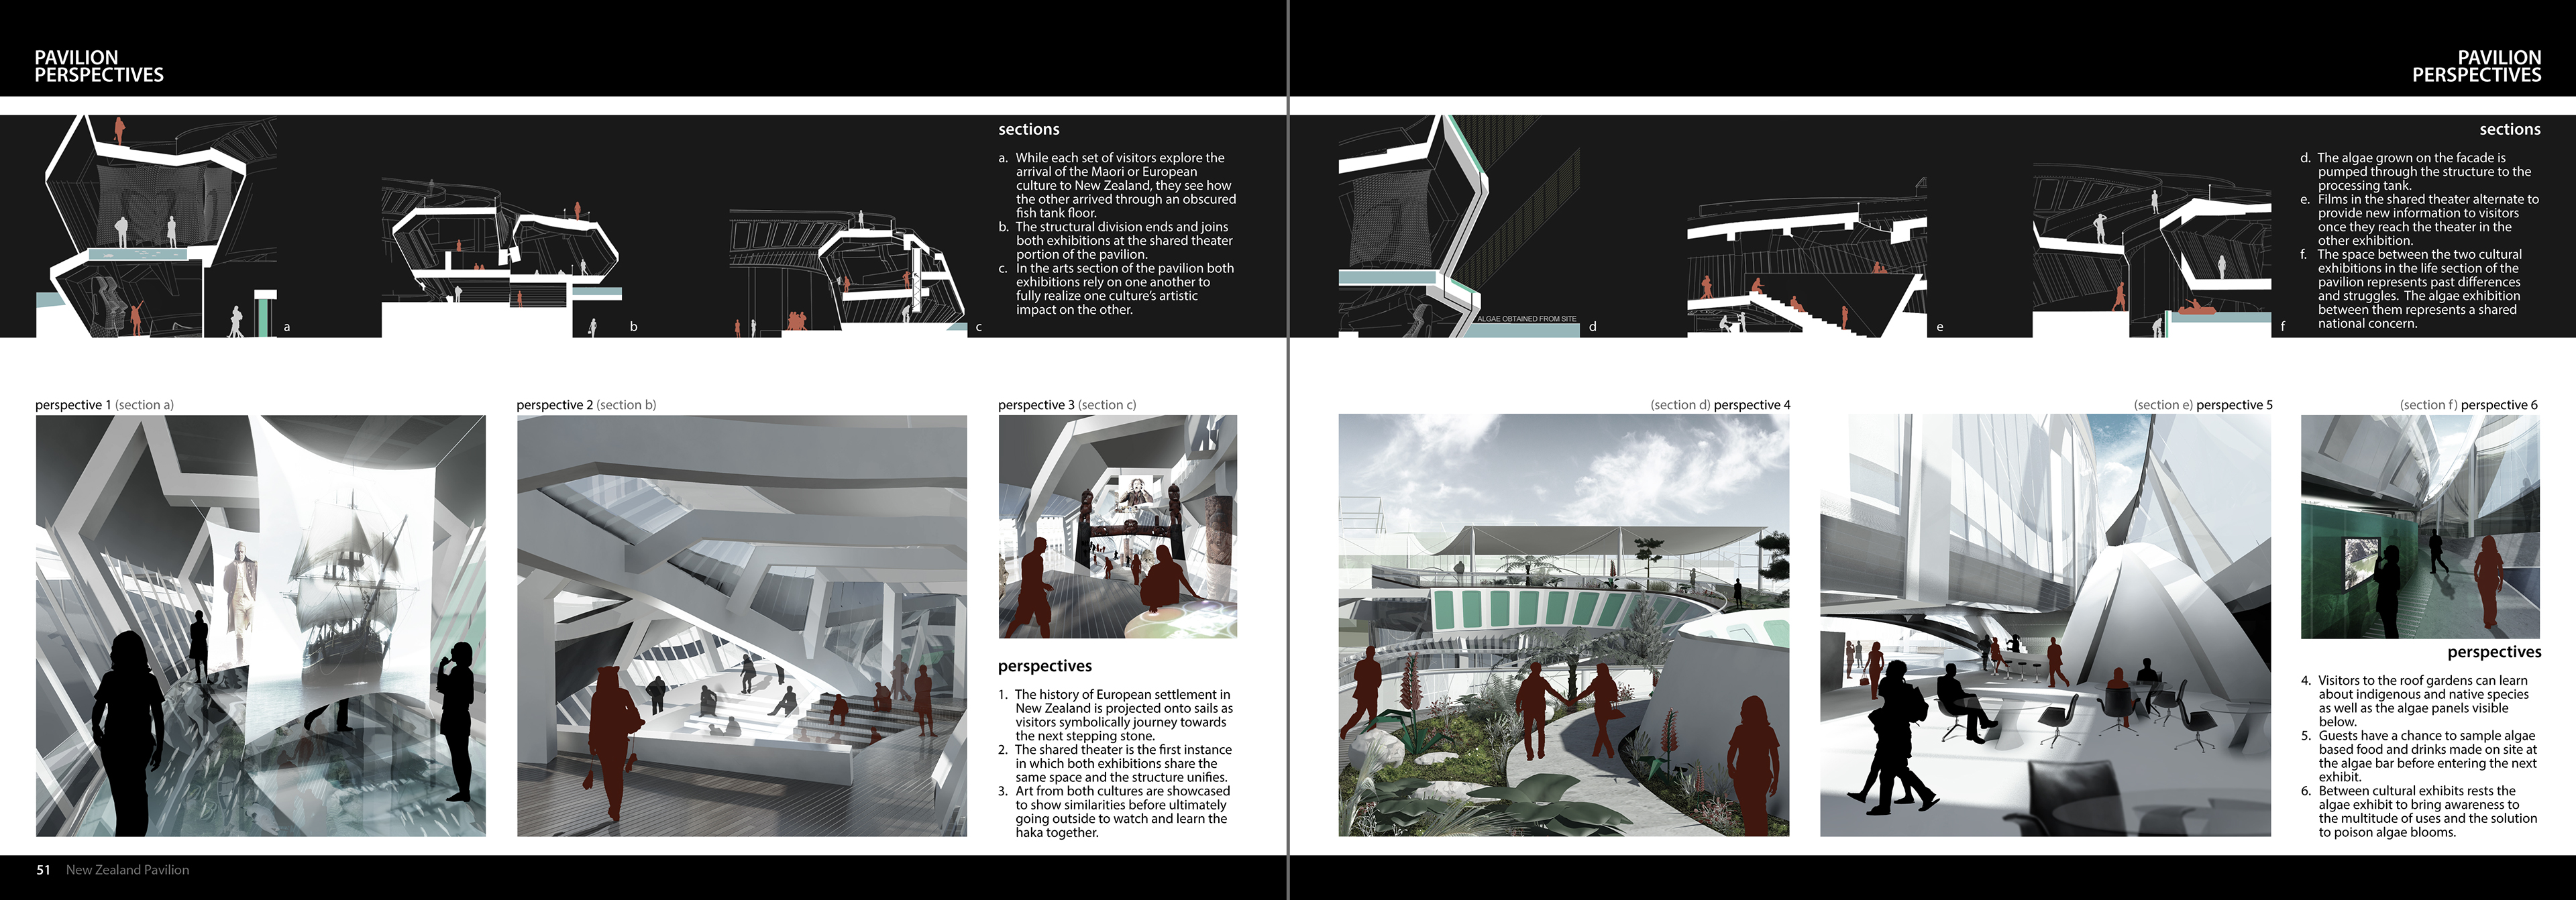 Landscape architecture portfolio samples on behance.